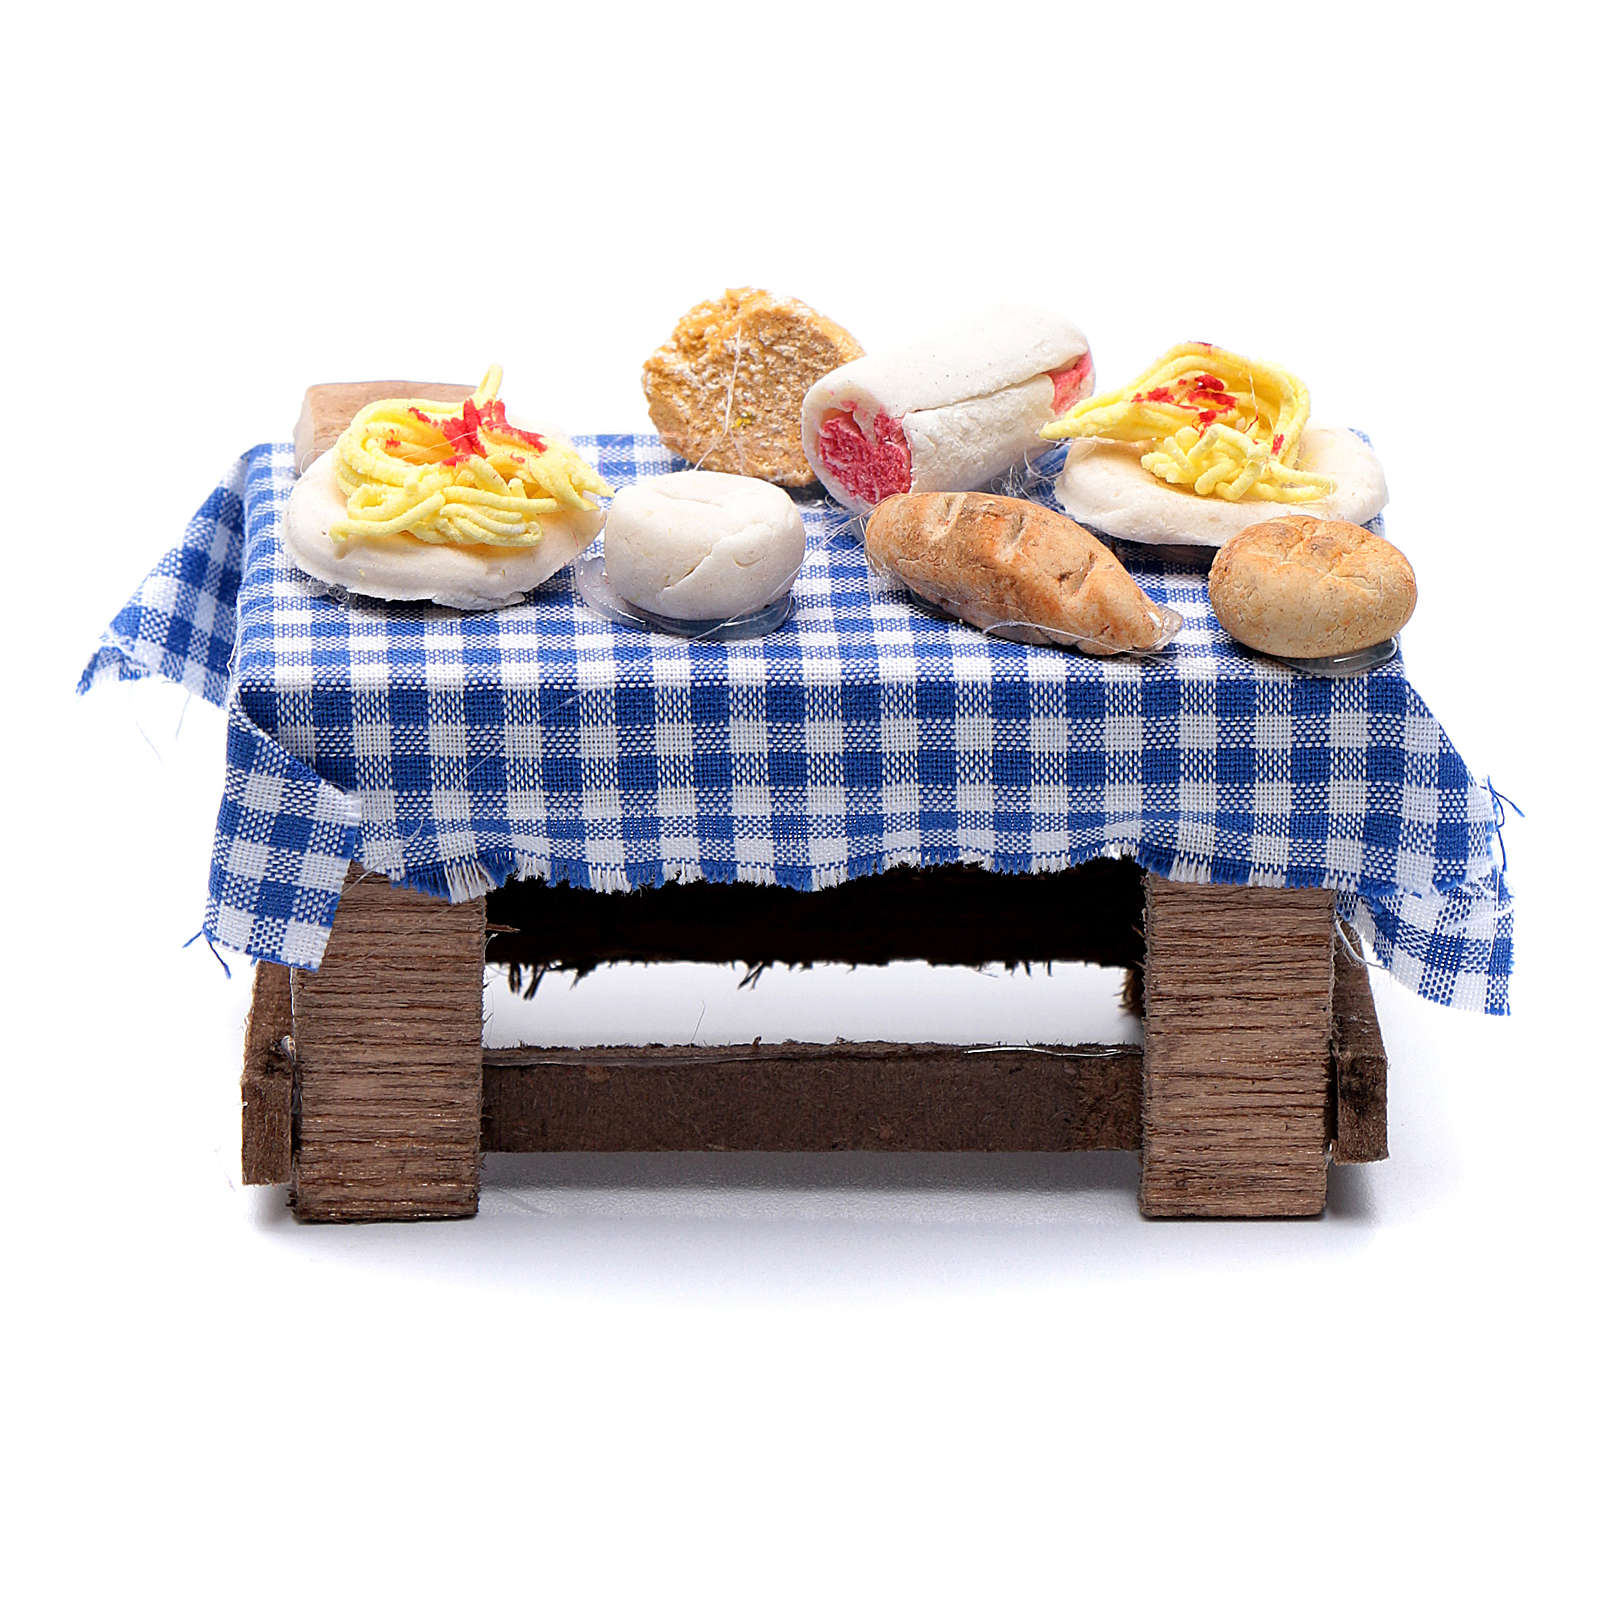 Neapolitan nativity scene table with food 5x10x5 cm 4